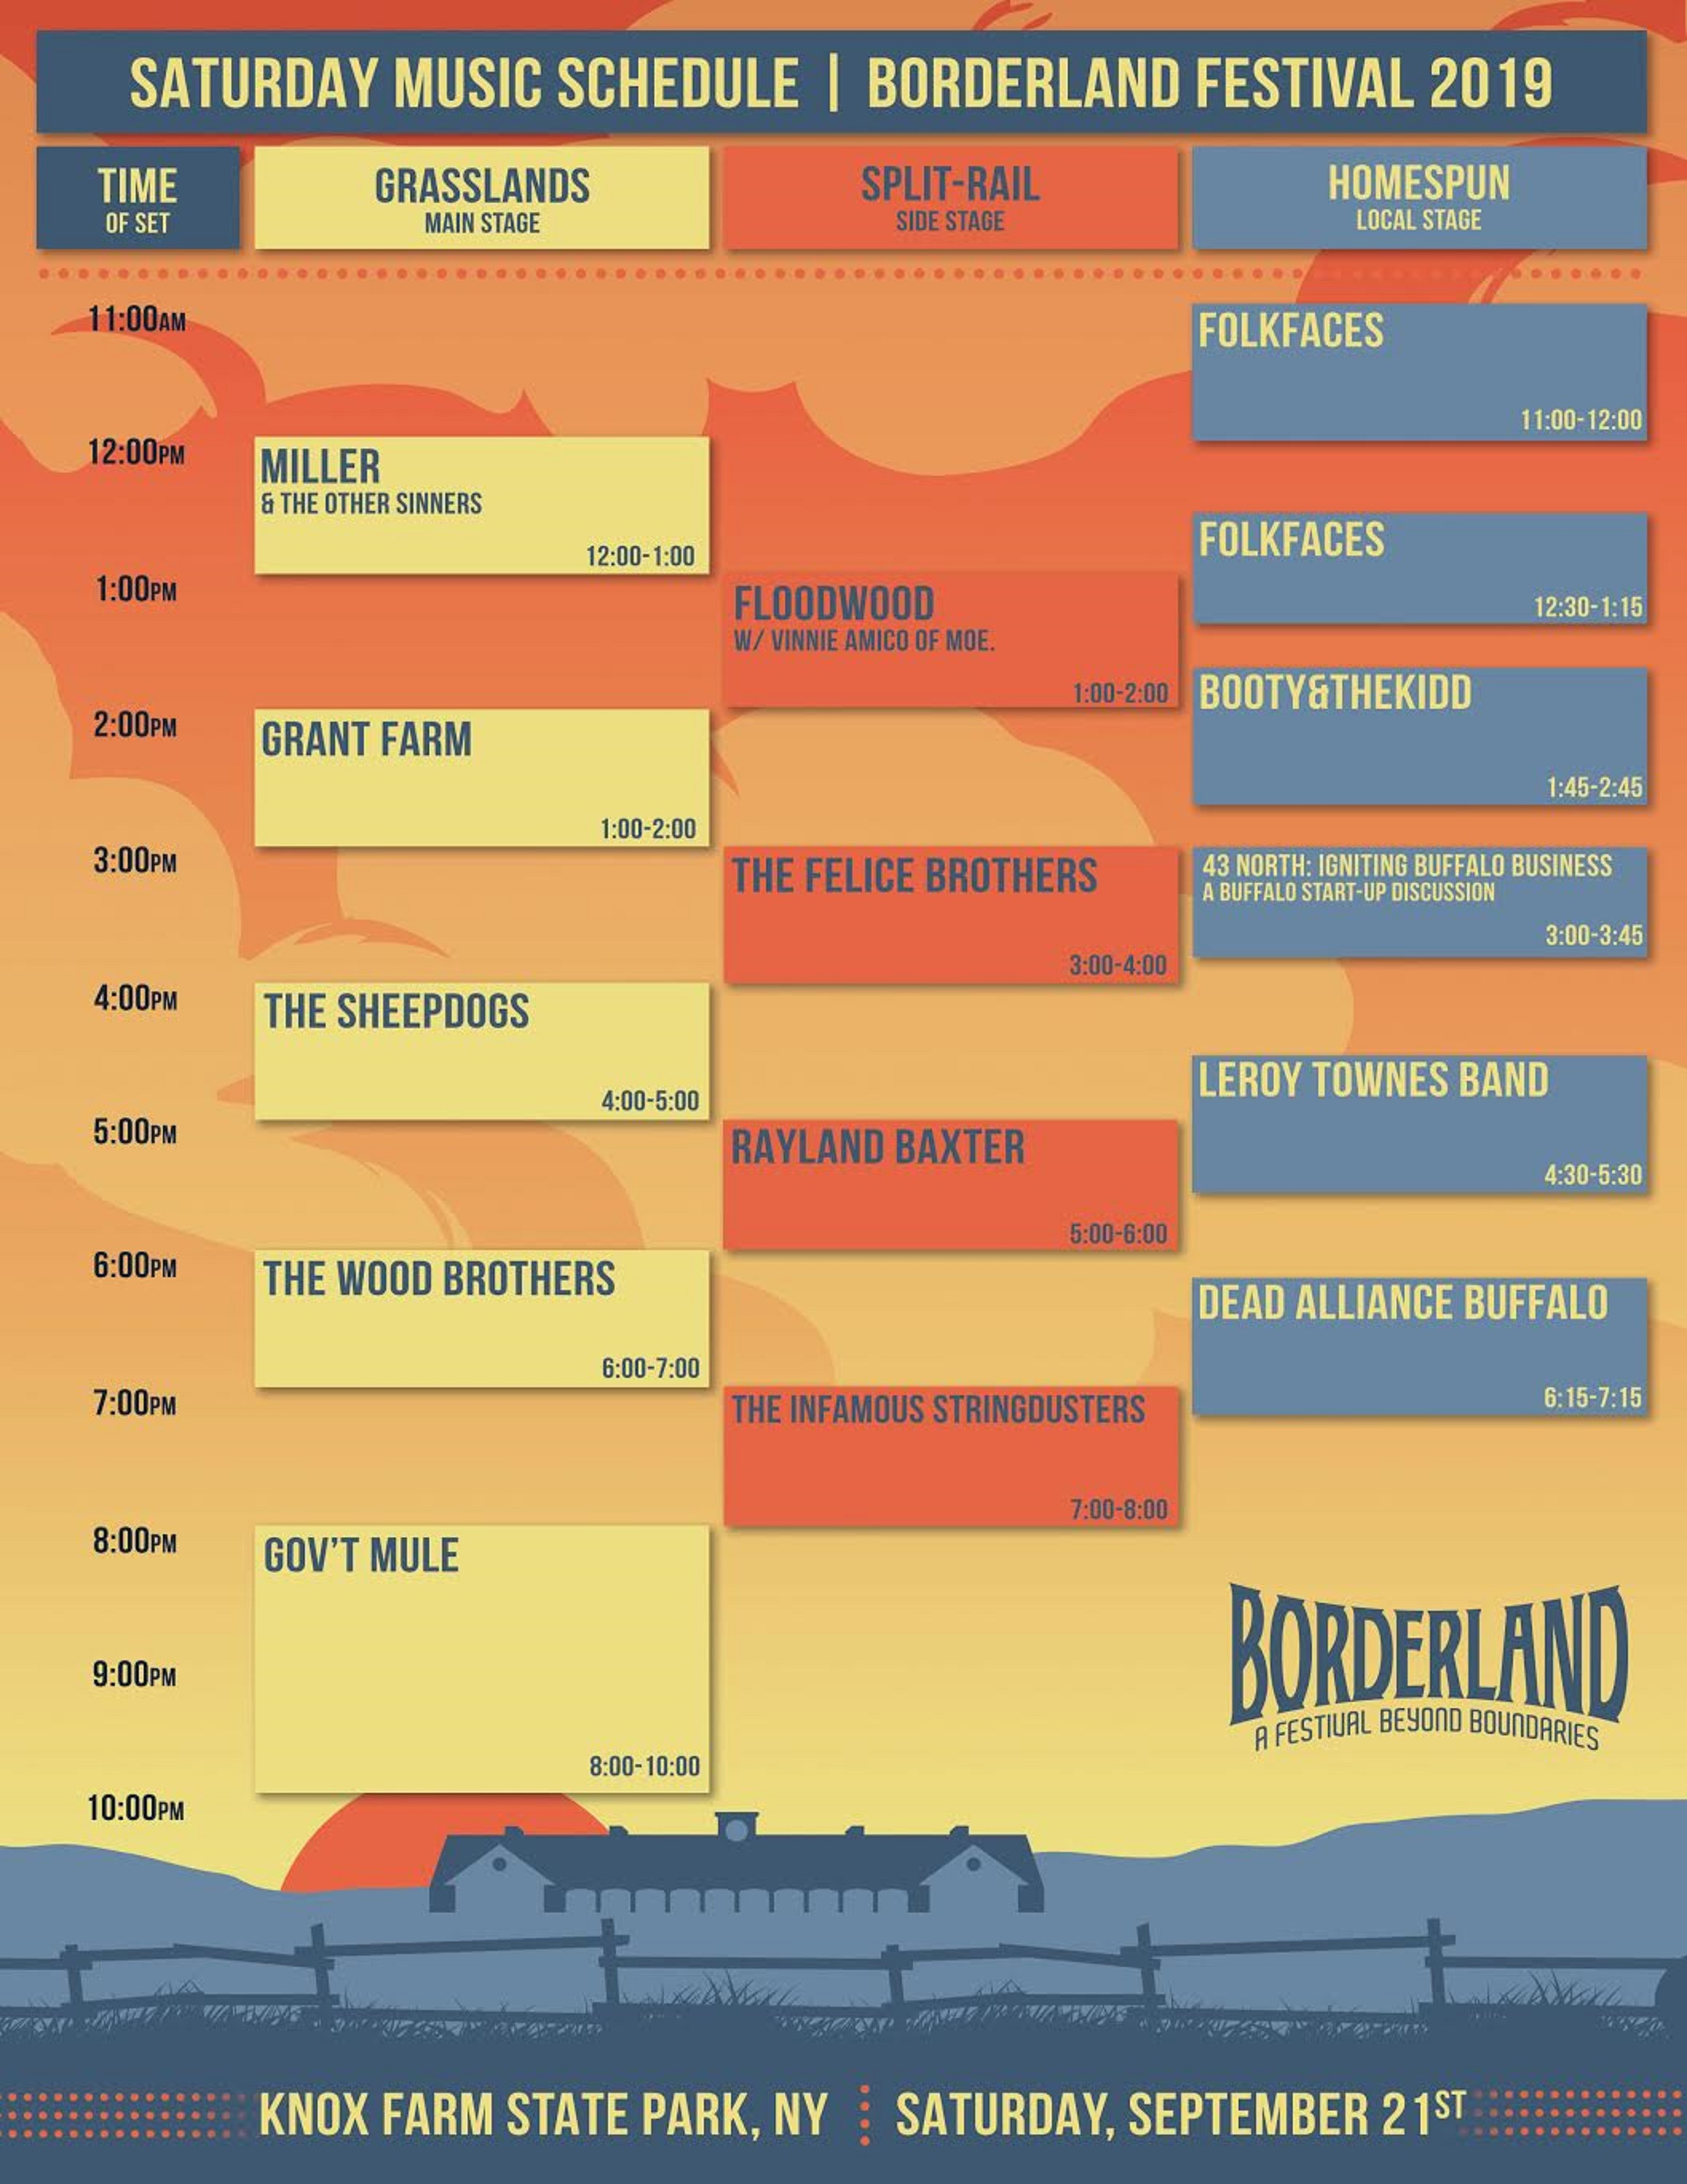 BORDERLAND FESTIVAL ANNOUNCES DAILY LINE-UP